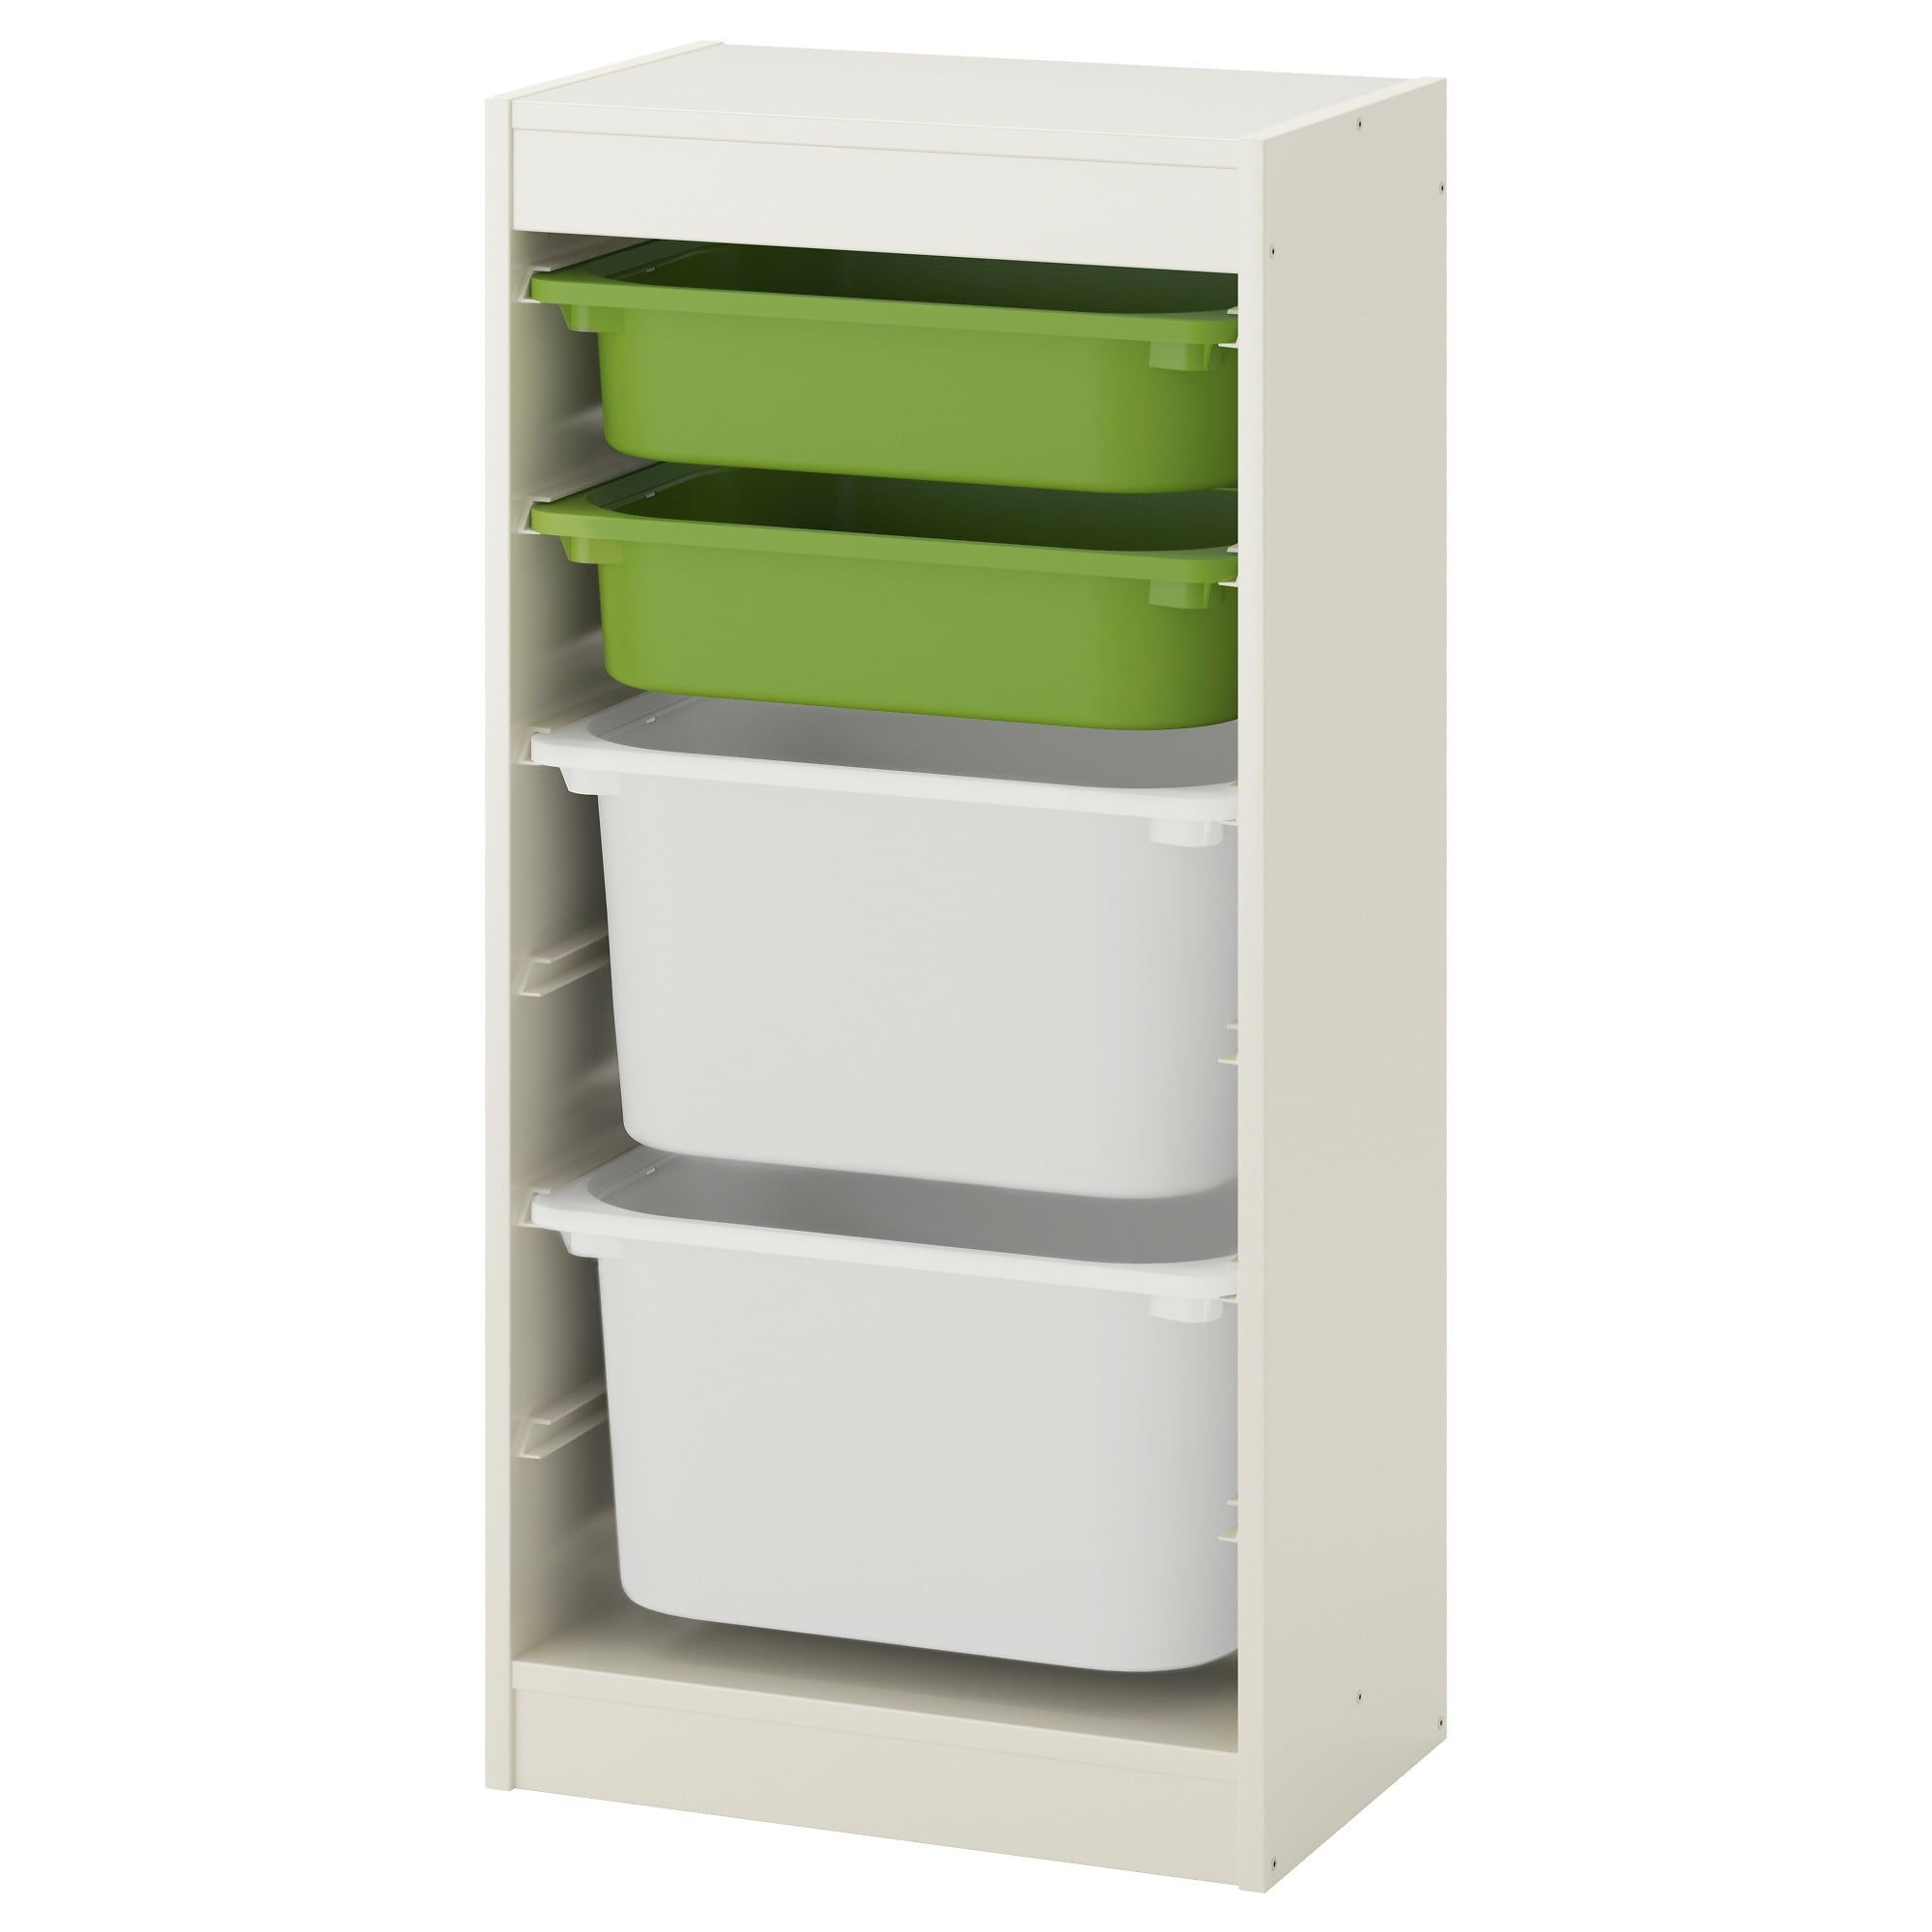 TROFAST Storage Combination With Boxes White, Green